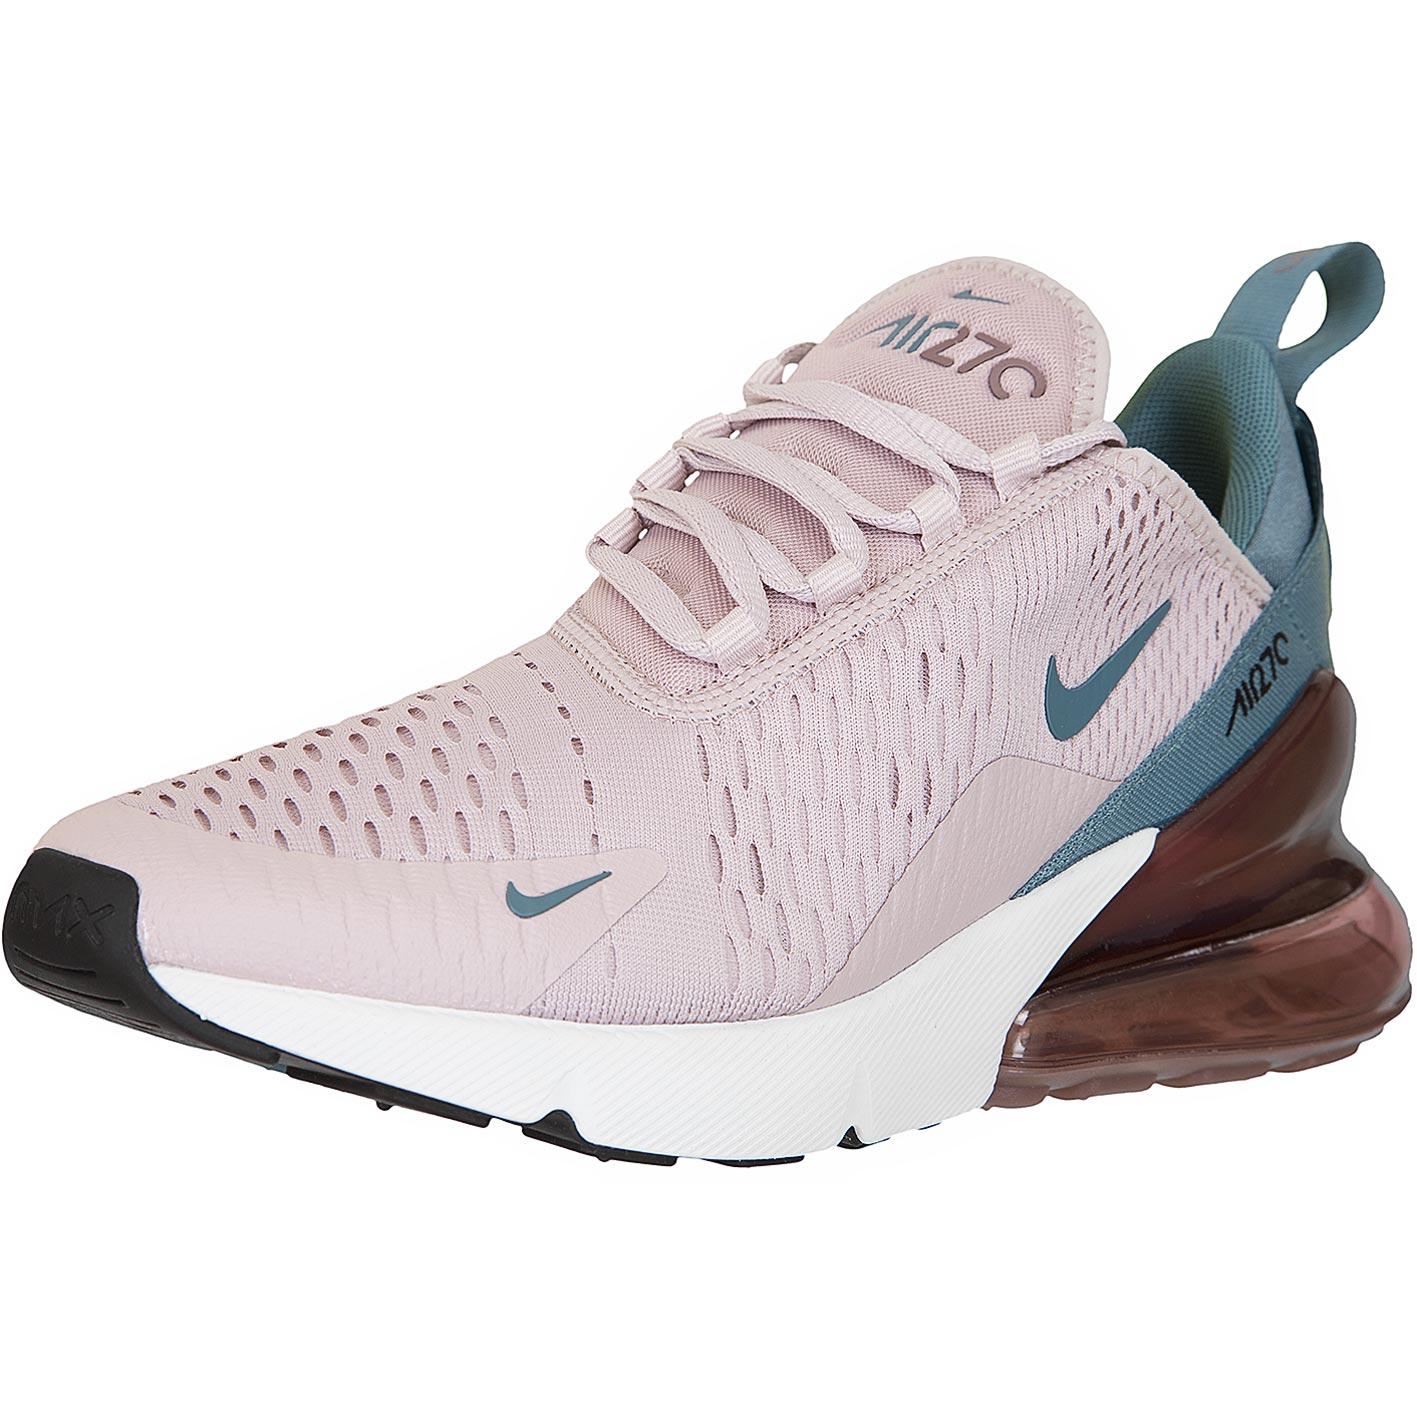 discount sale classic styles outlet for sale ☆ Nike Damen Sneaker Air Max 270 rose/teal - hier bestellen!